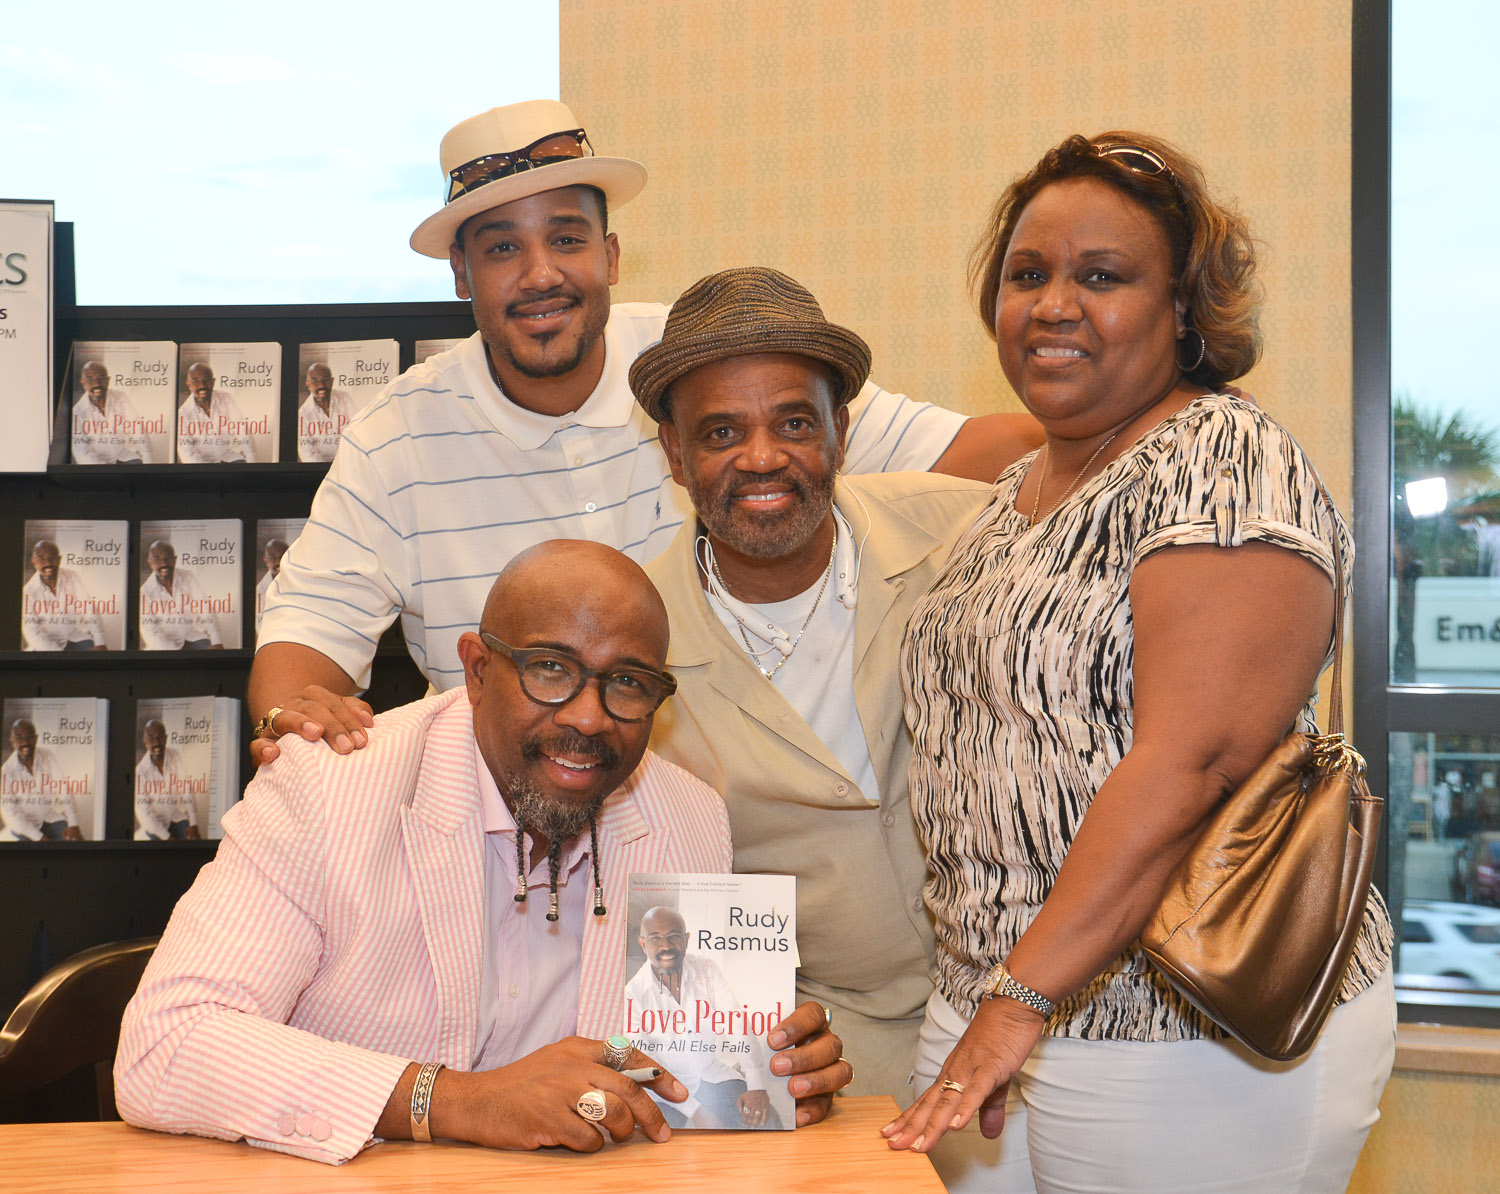 Paster Rudy book signing -0376.jpg